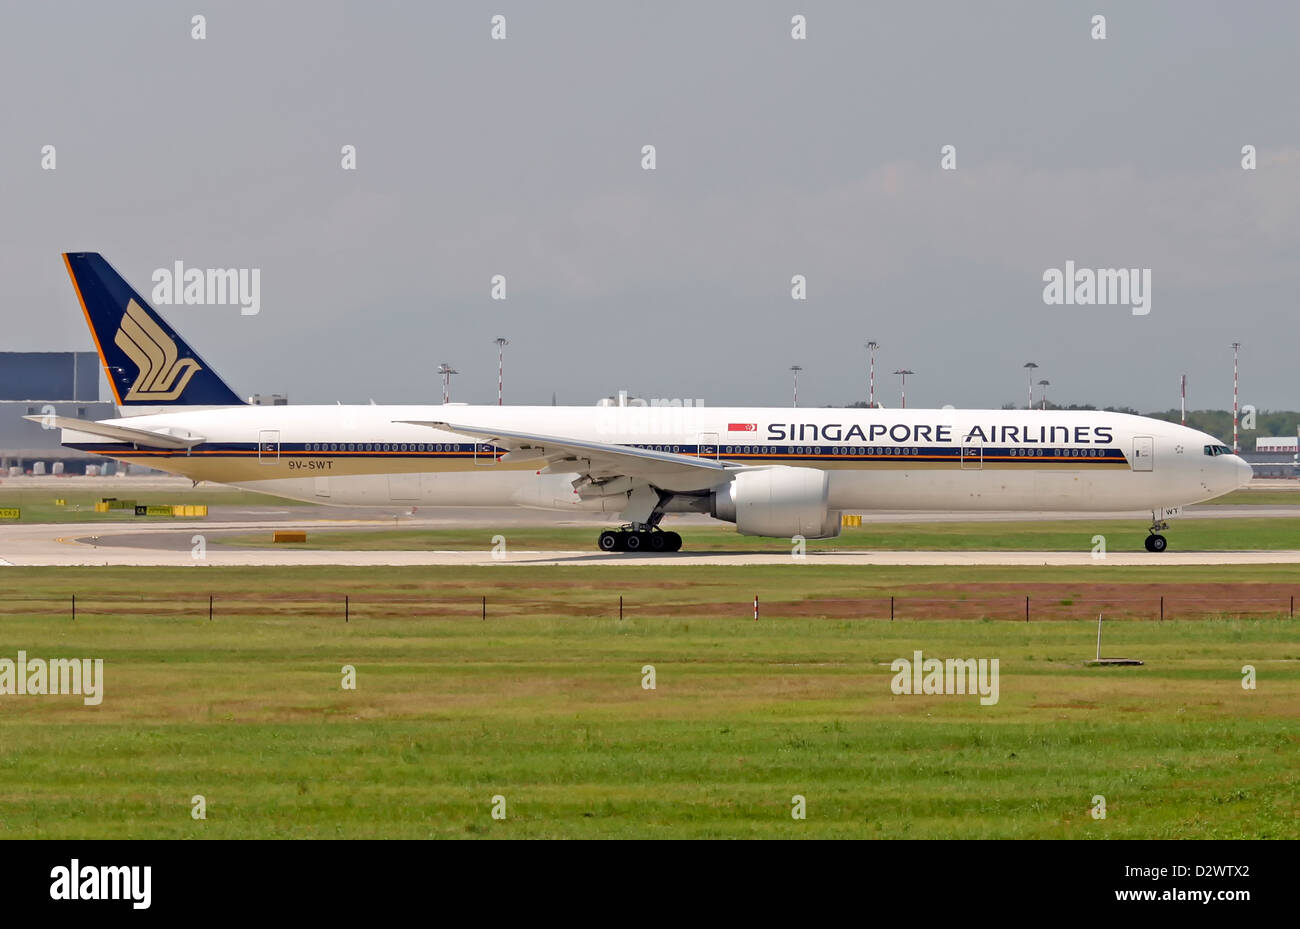 Singapore Airlines, Boeing 777-300 - Stock Image